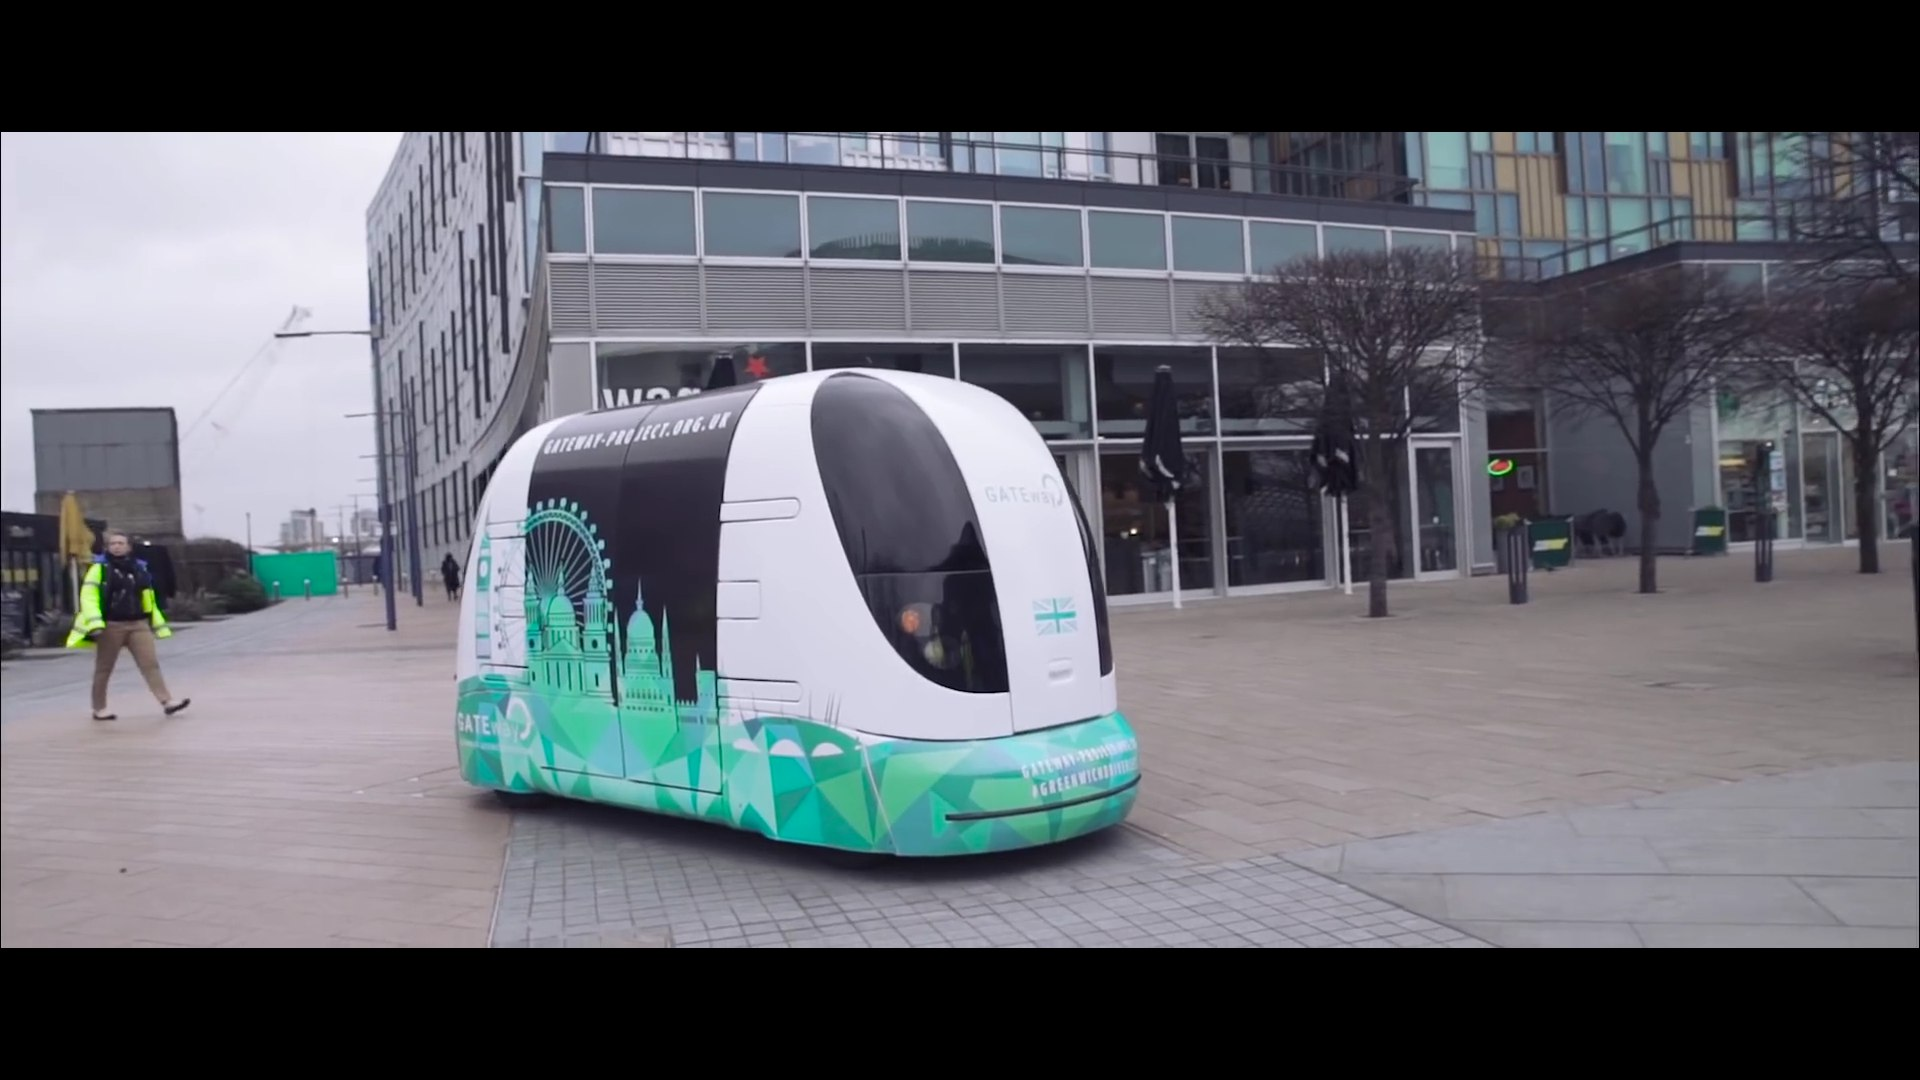 London Self-Driving Vehicles